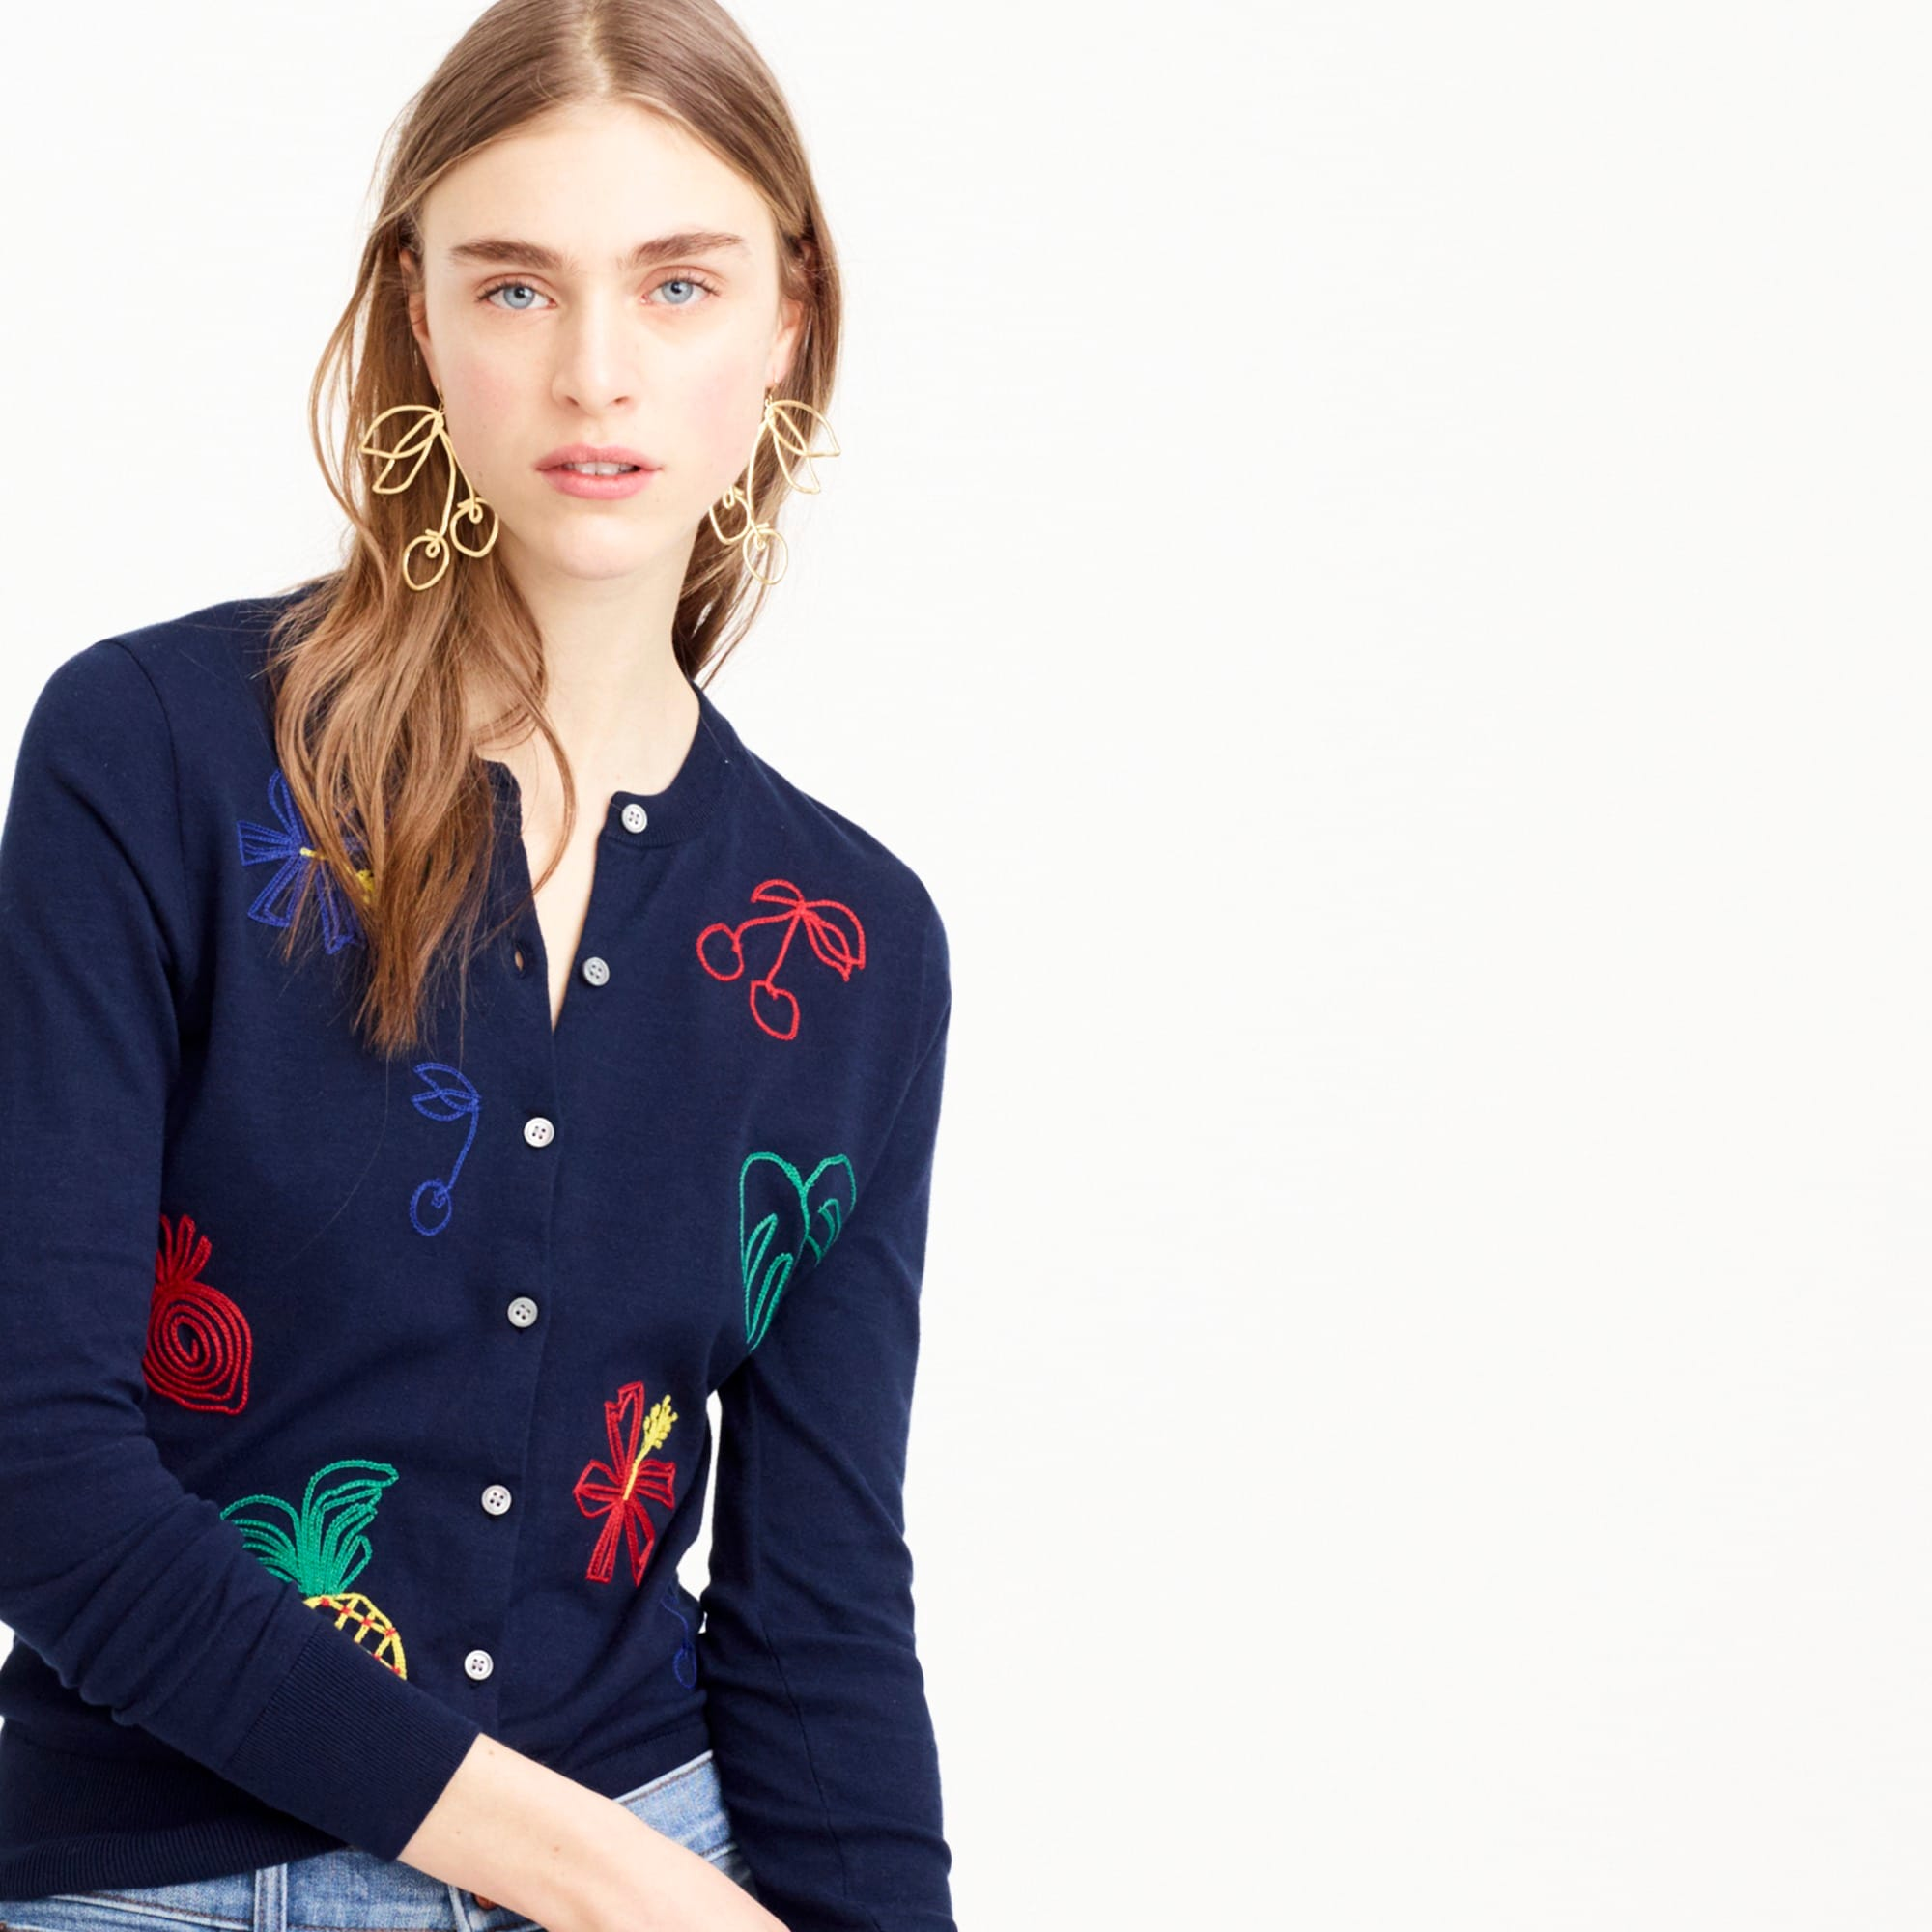 Image 1 for Embroidered fruit cotton Jackie cardigan sweater